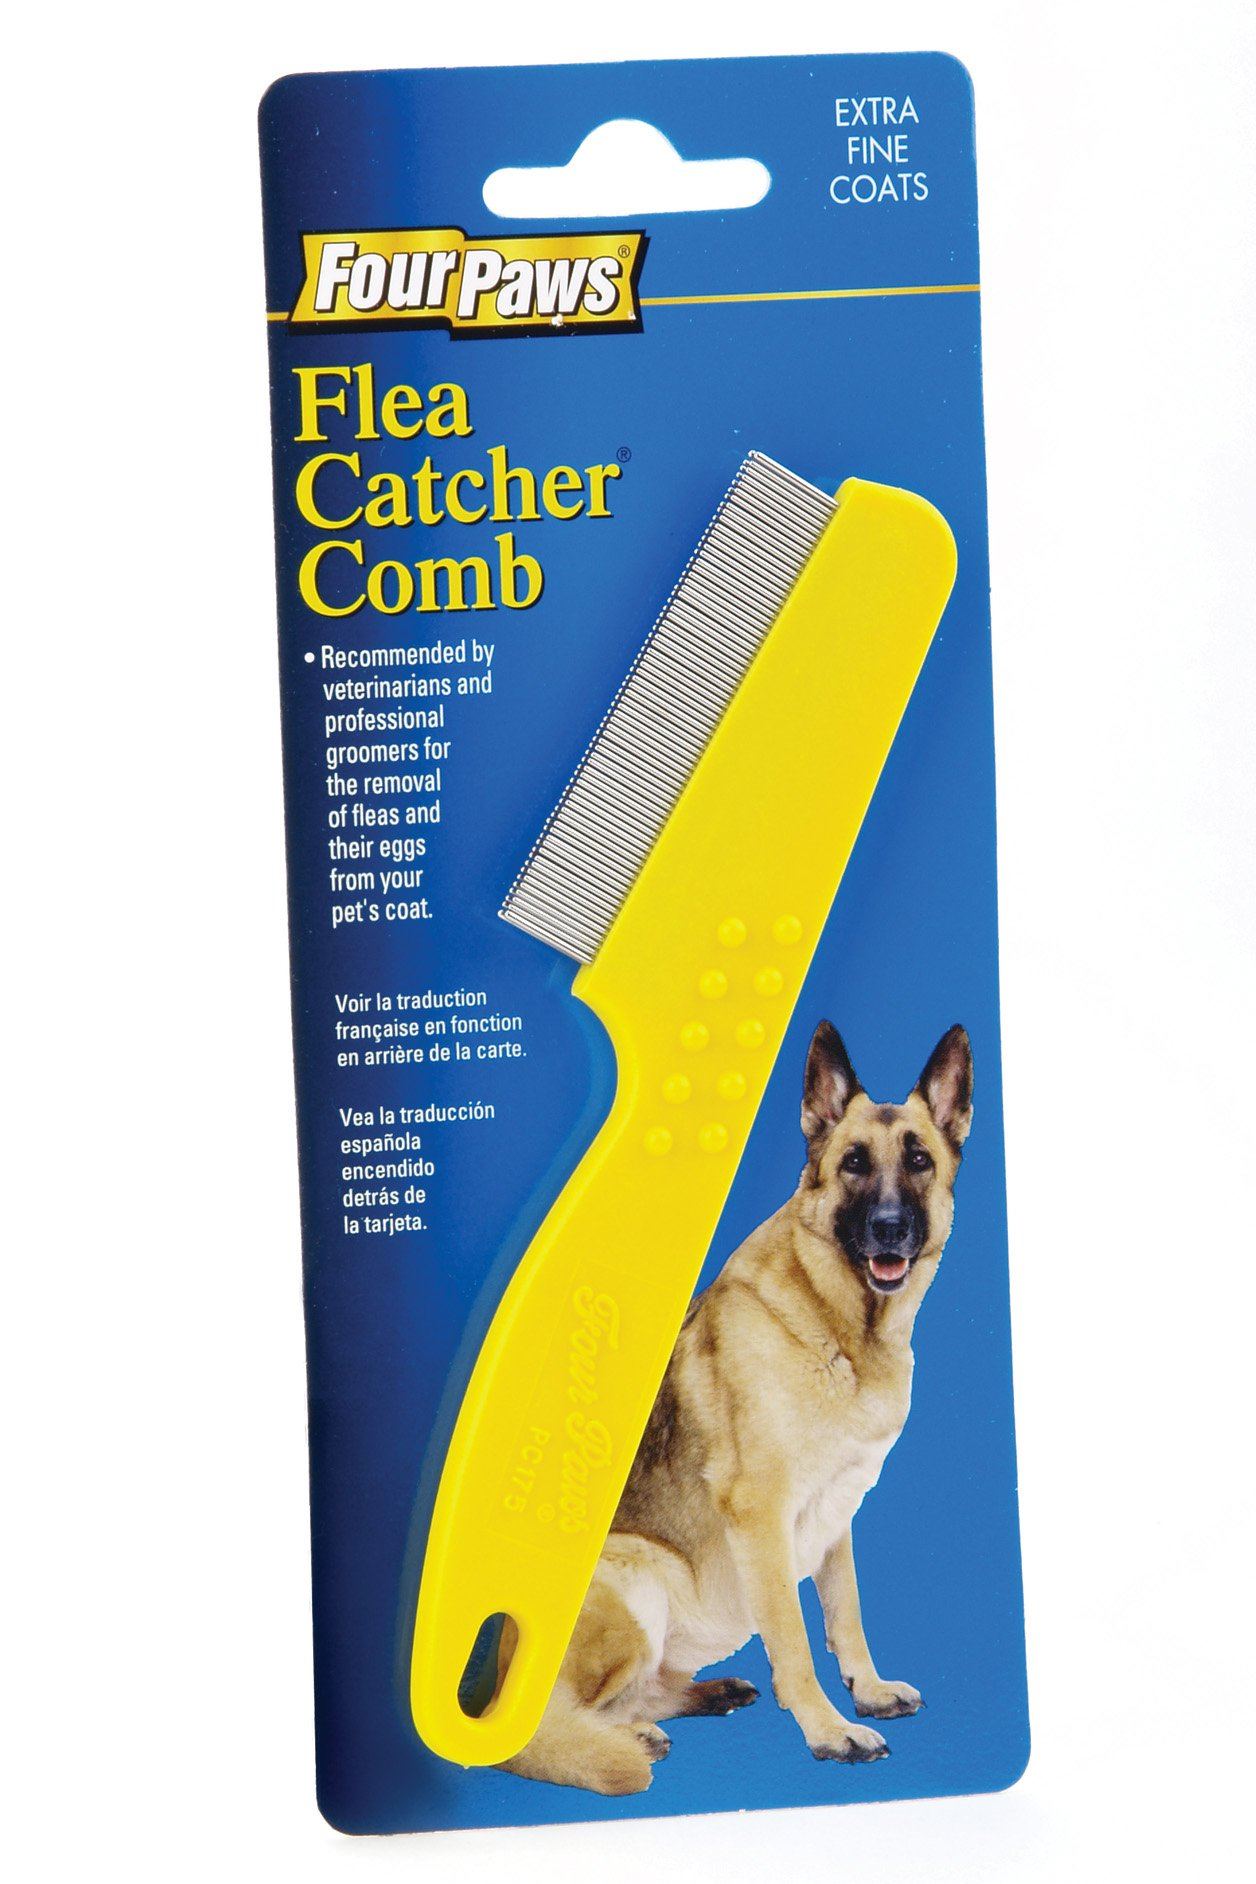 Four Paws Double Row Flea Catching Dog Comb